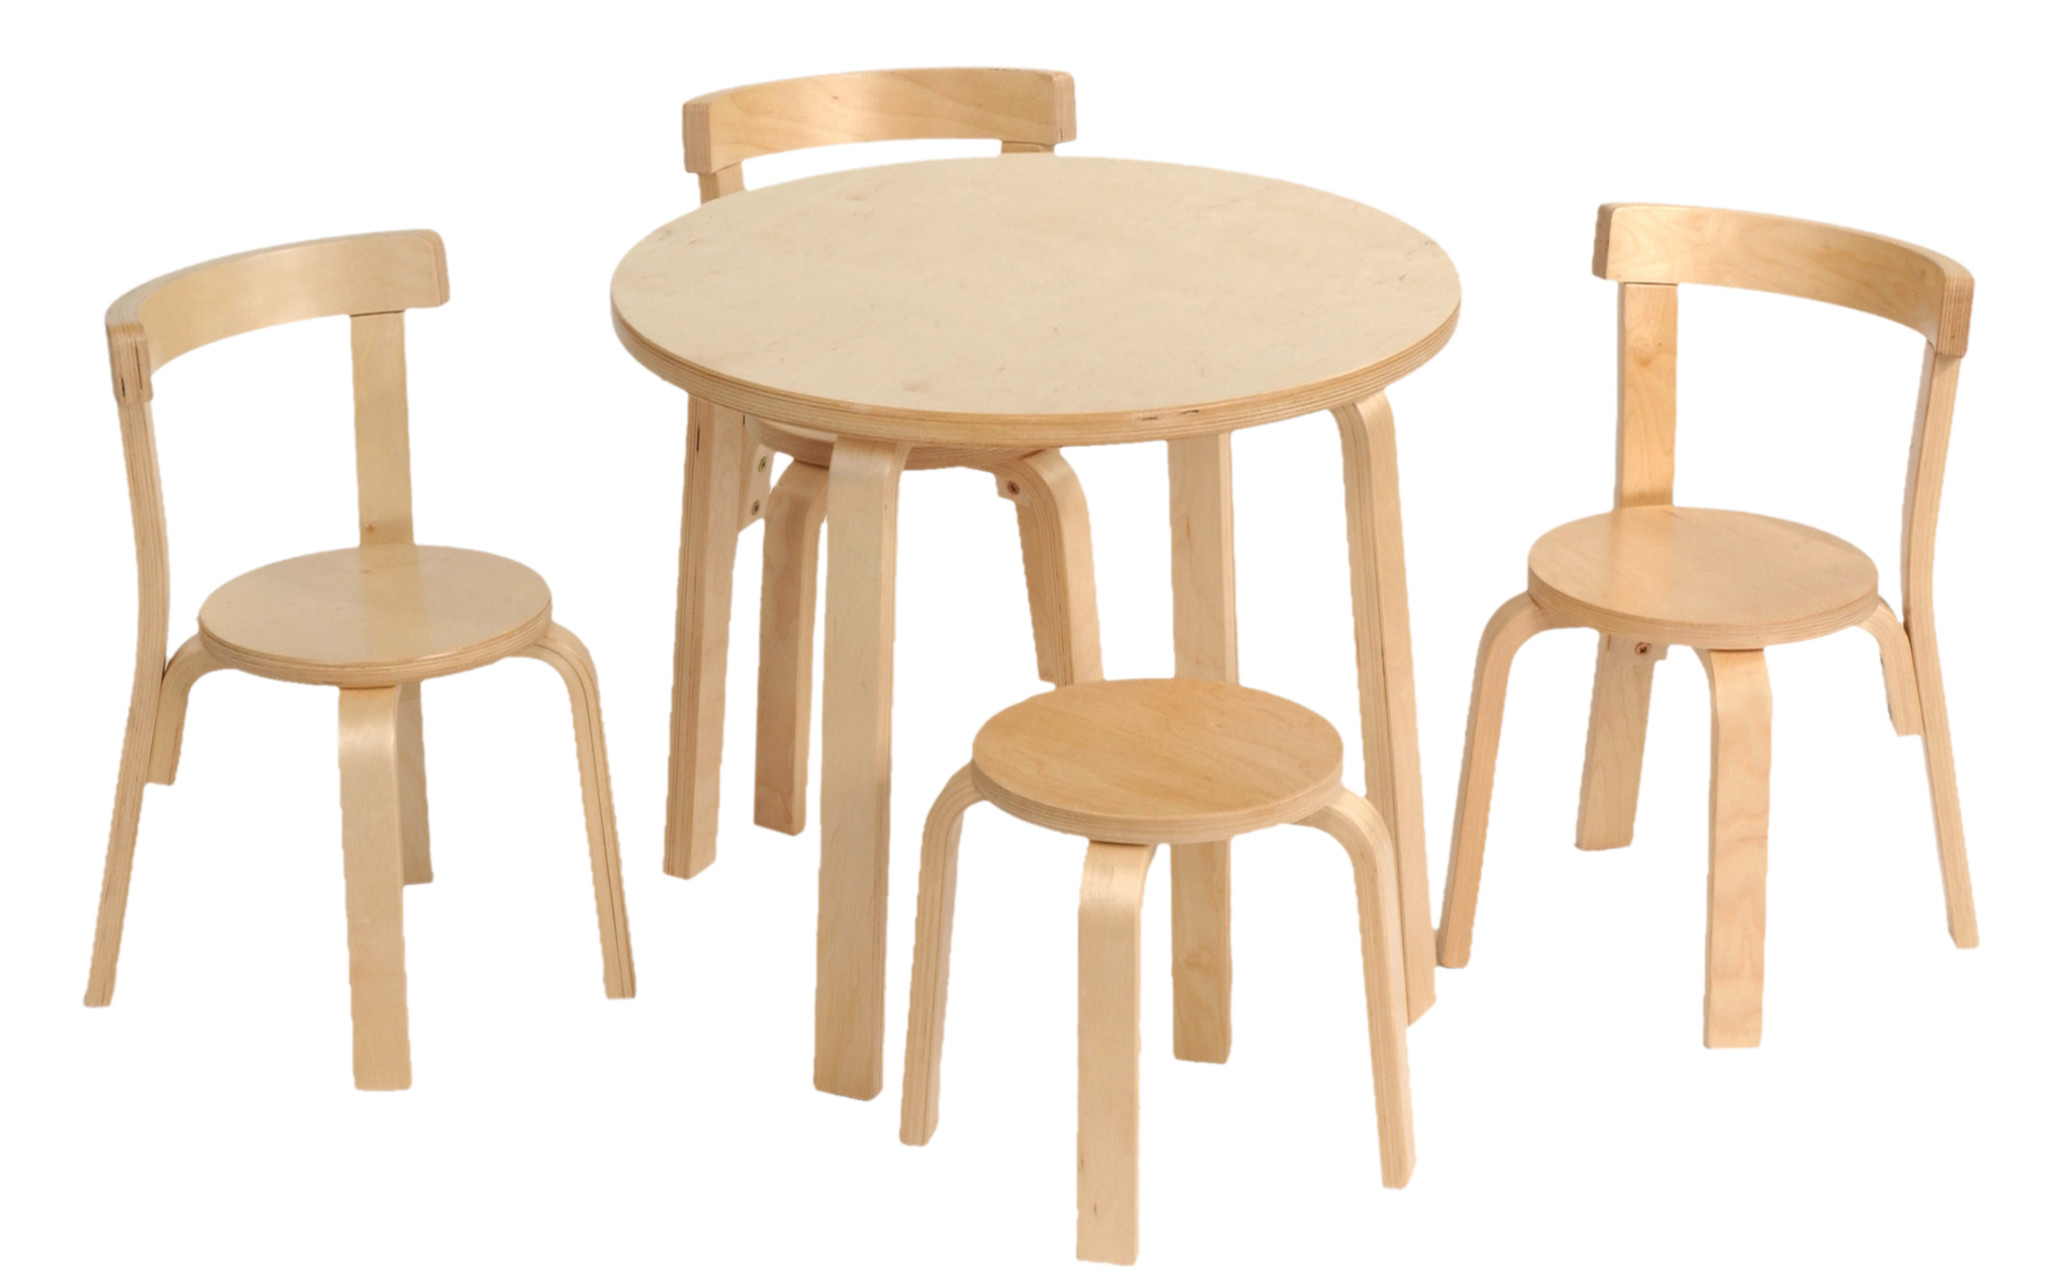 Svan Play With Me Toddler Table Chairs Set